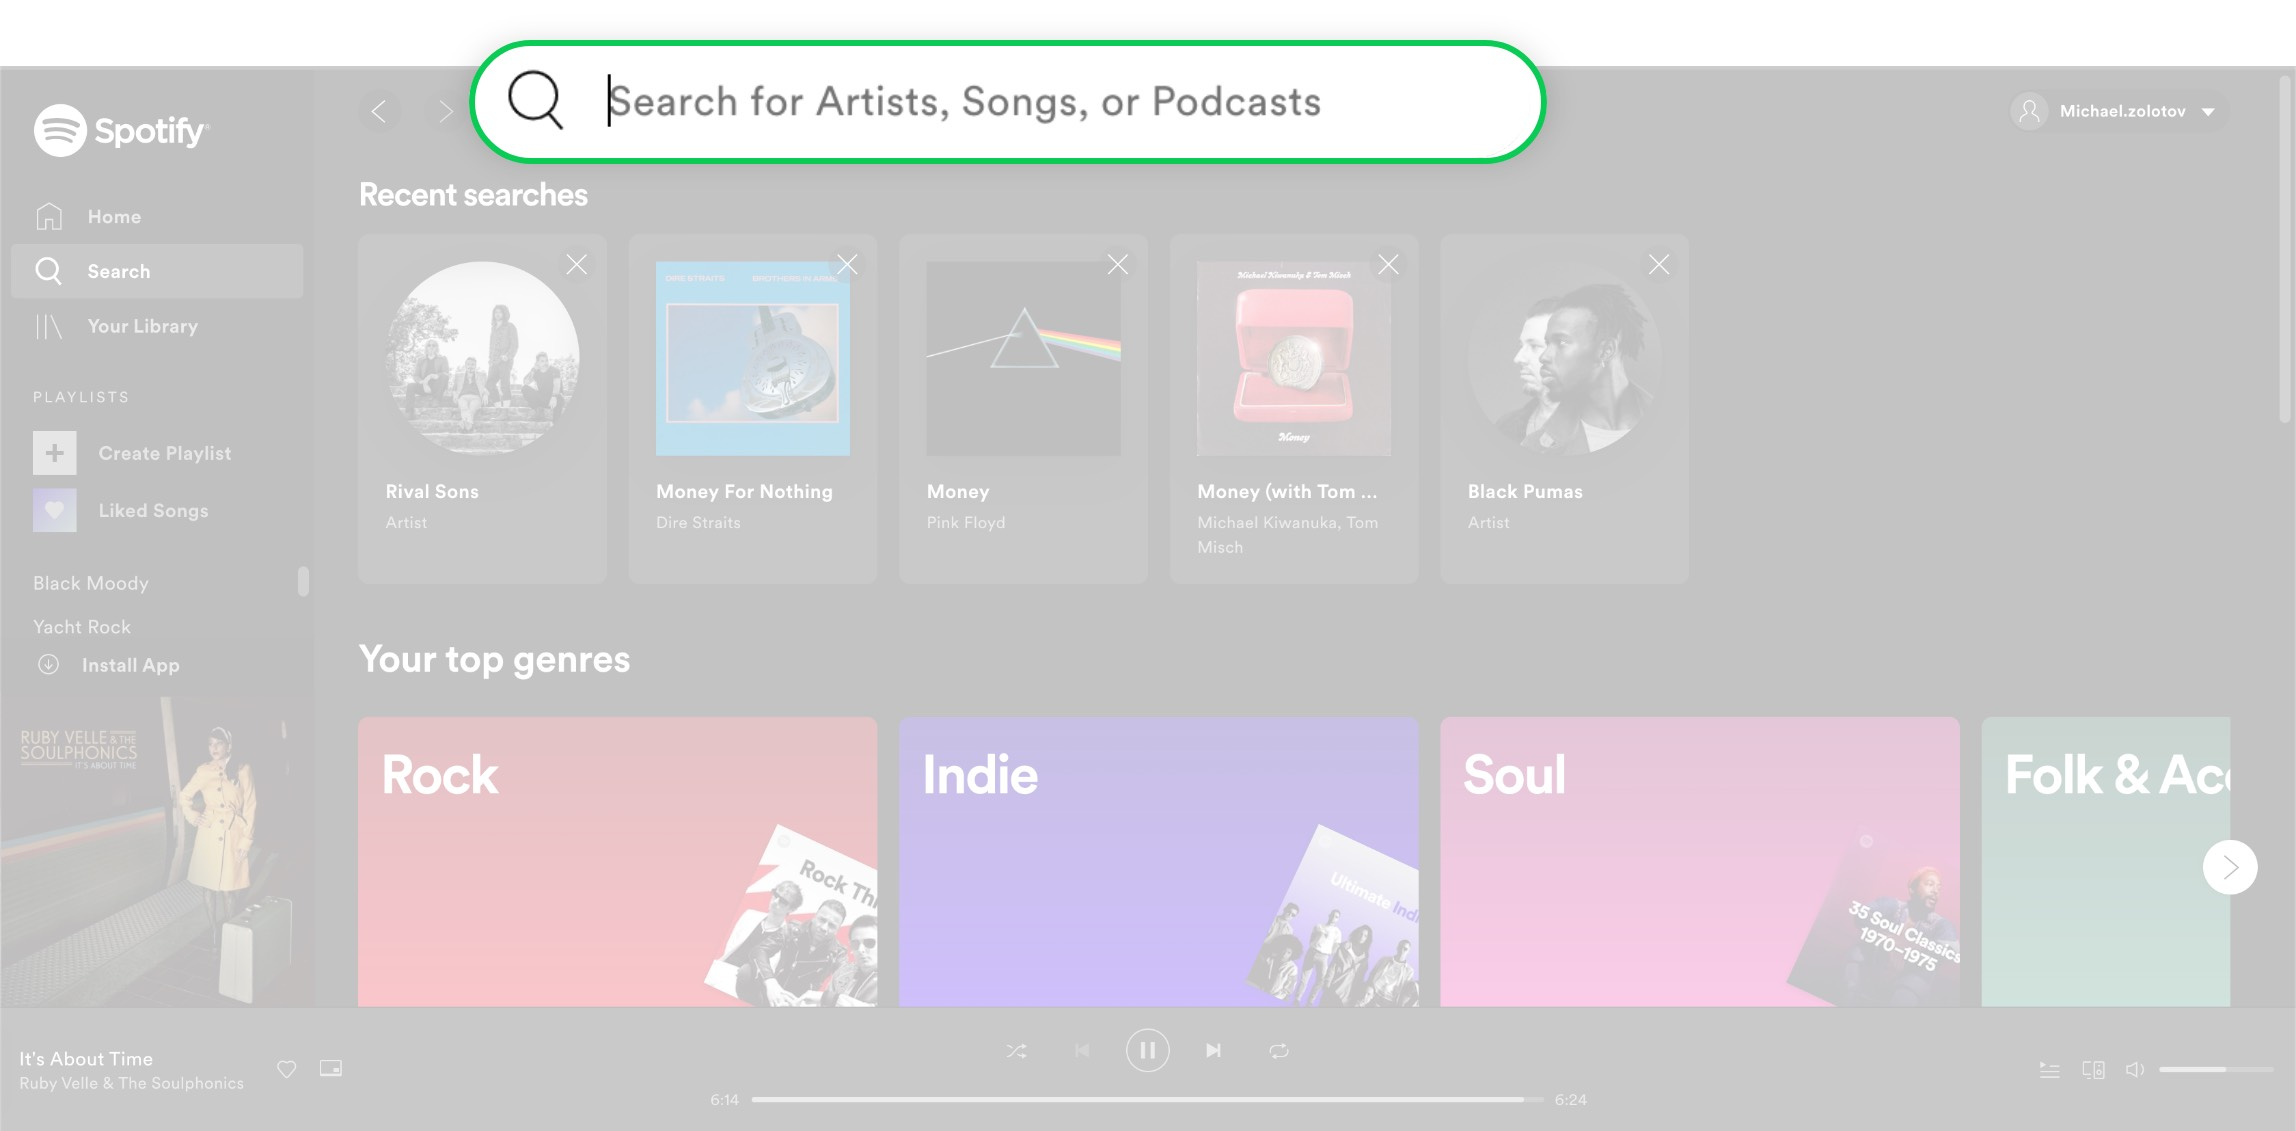 The search engine on Spotify